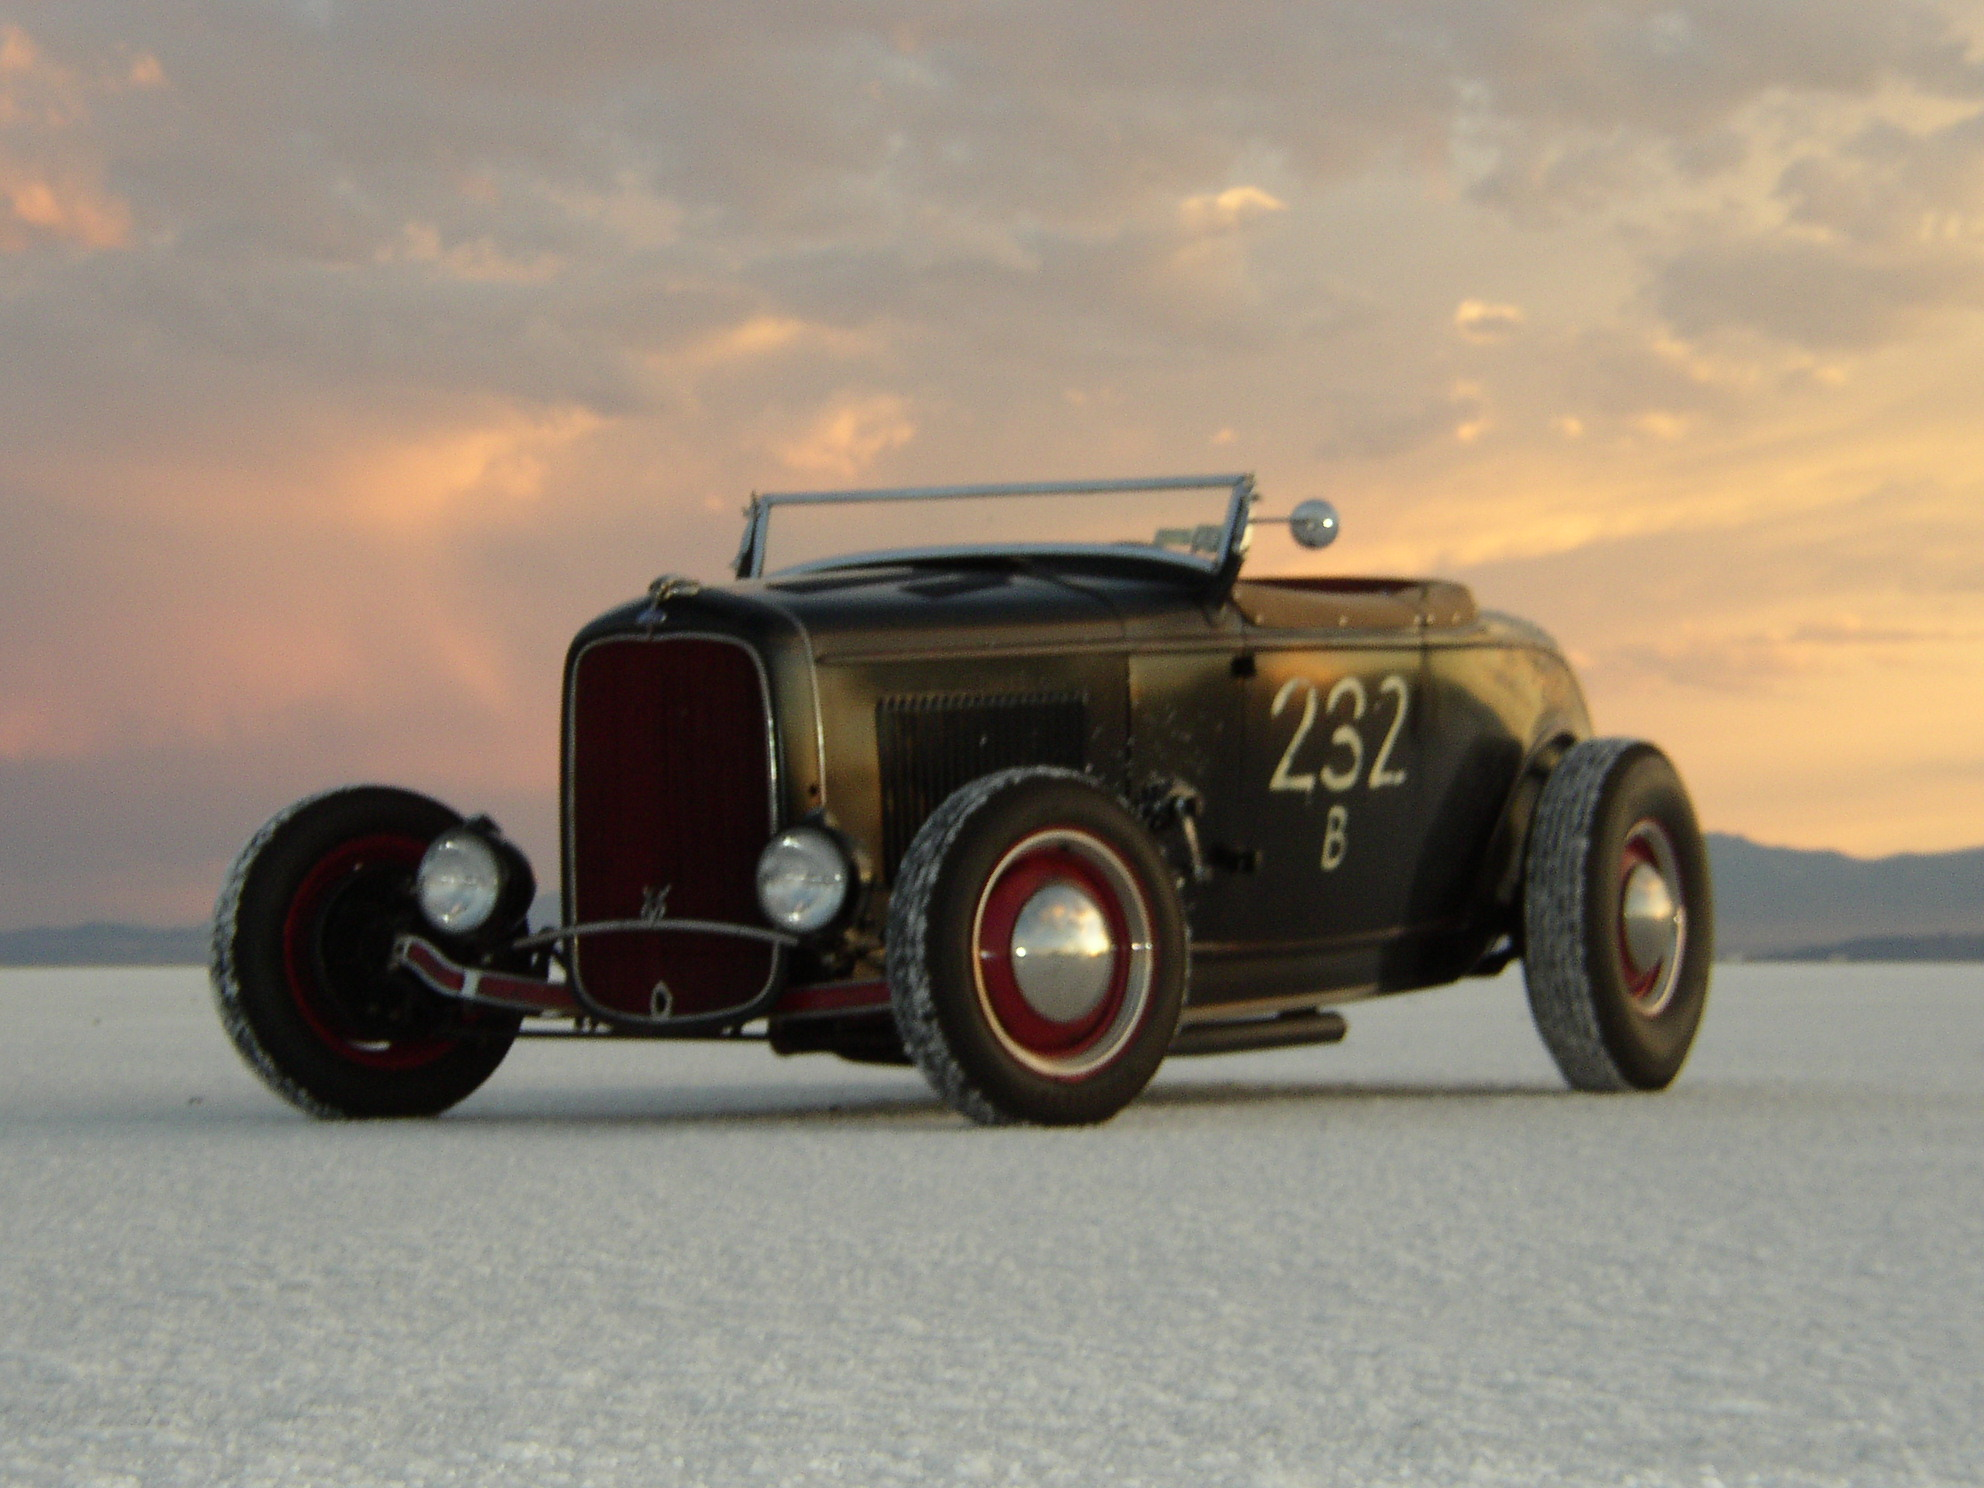 Hot Rod Wallpapers Vehicles Hq Hot Rod Pictures 4k Wallpapers 2019